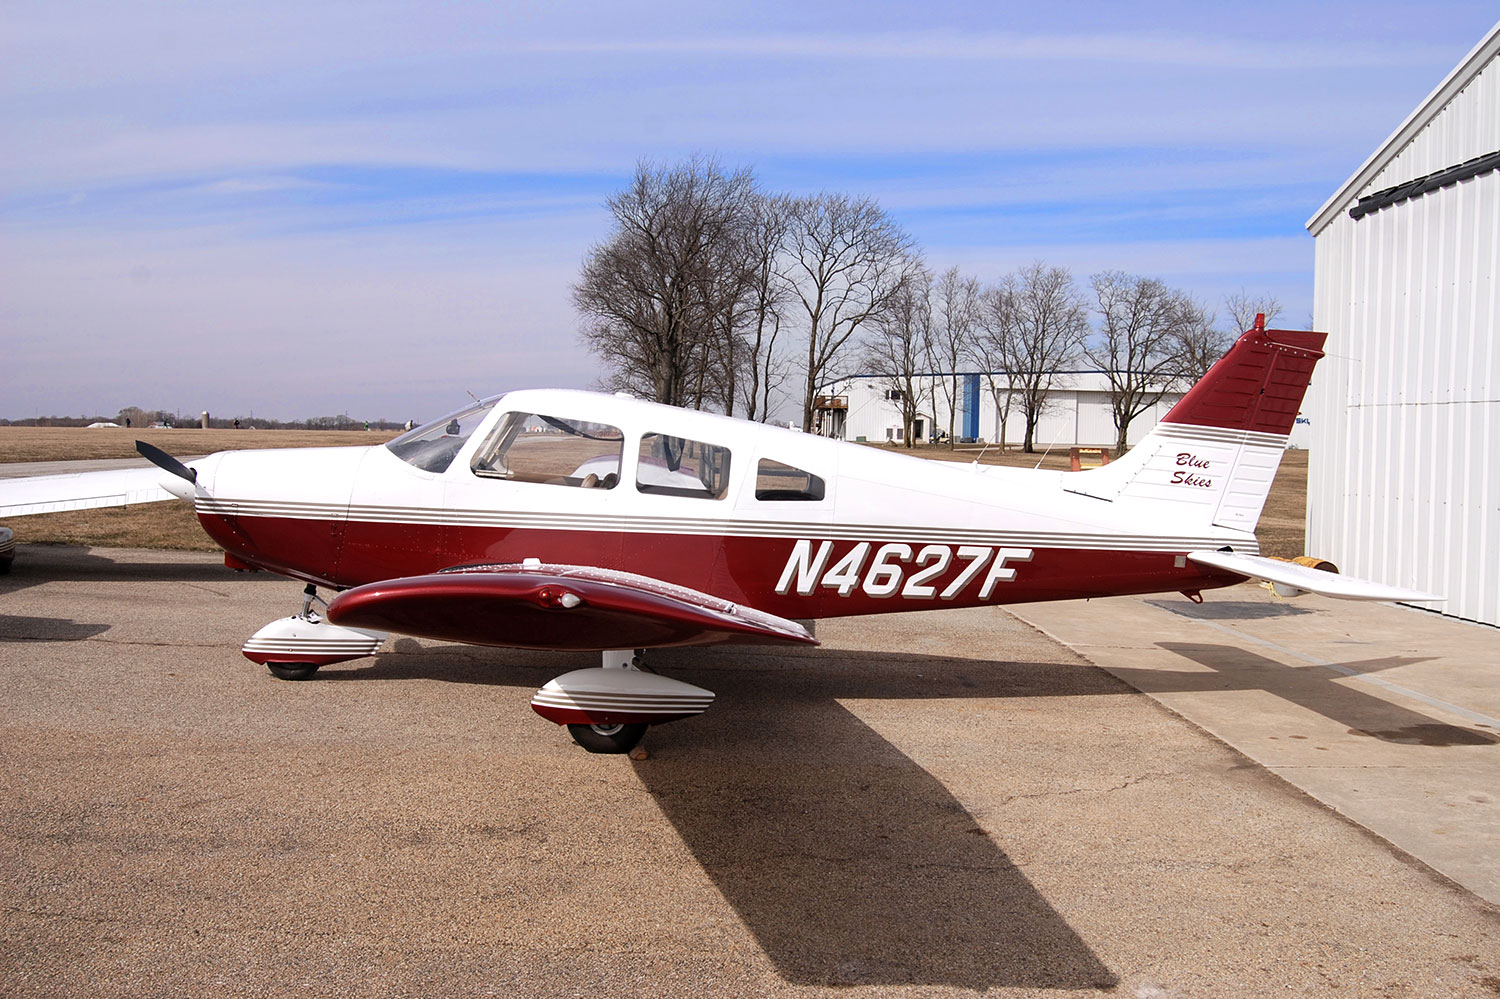 Blue-Skies-Flying-Services-Cockpit-Panel-Bluetooth-Piper-Archer-N4627F-Plane